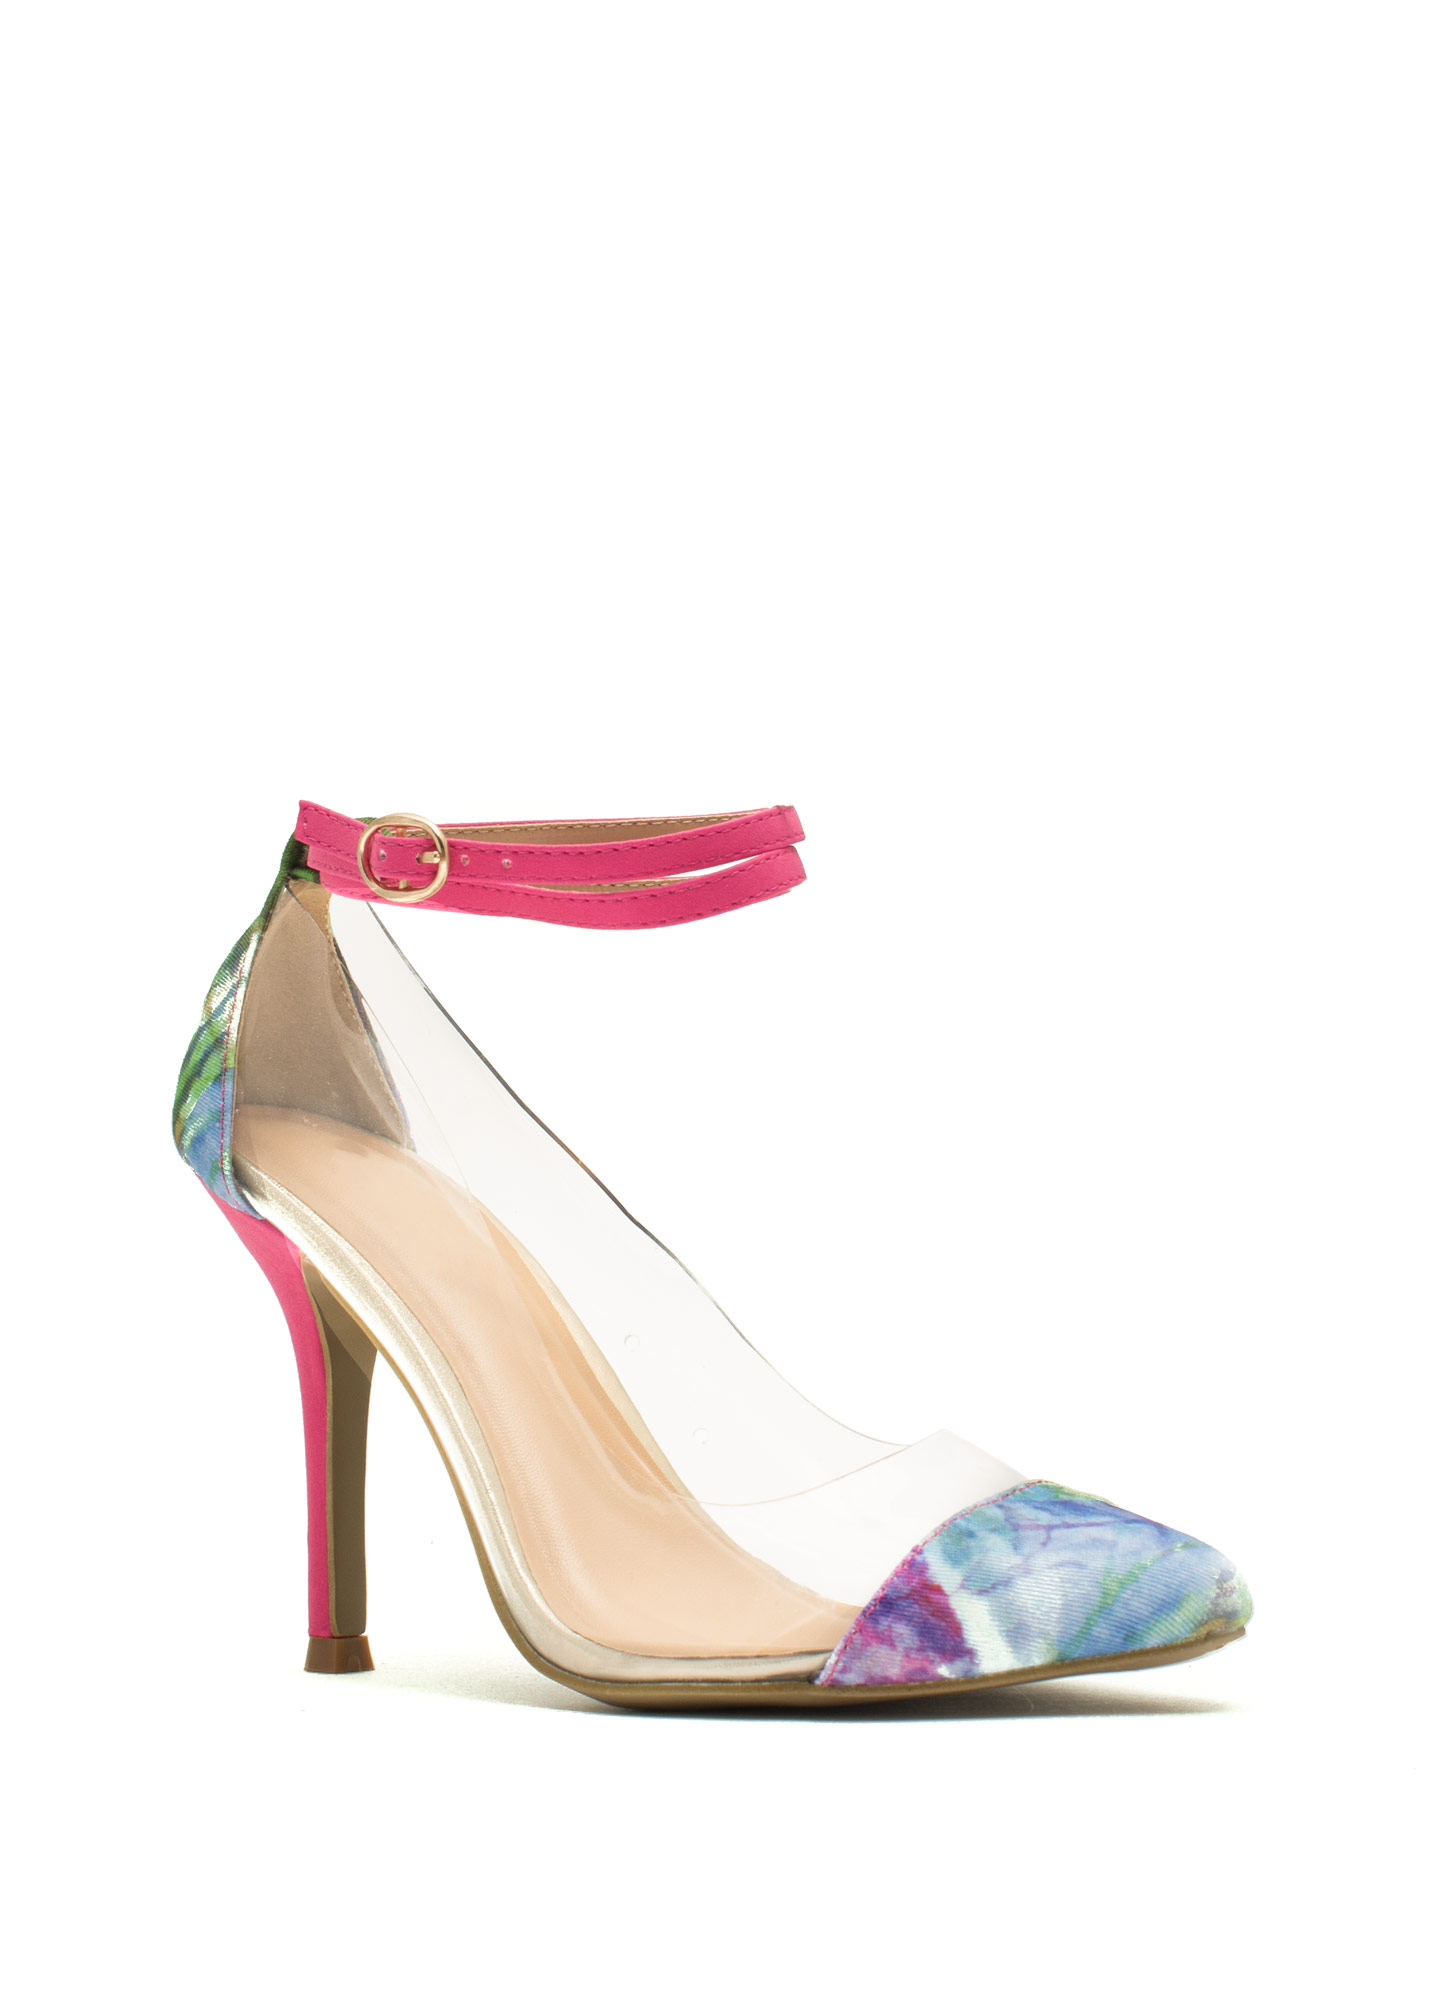 Clearly Floral Ankle Strap Heels PINK